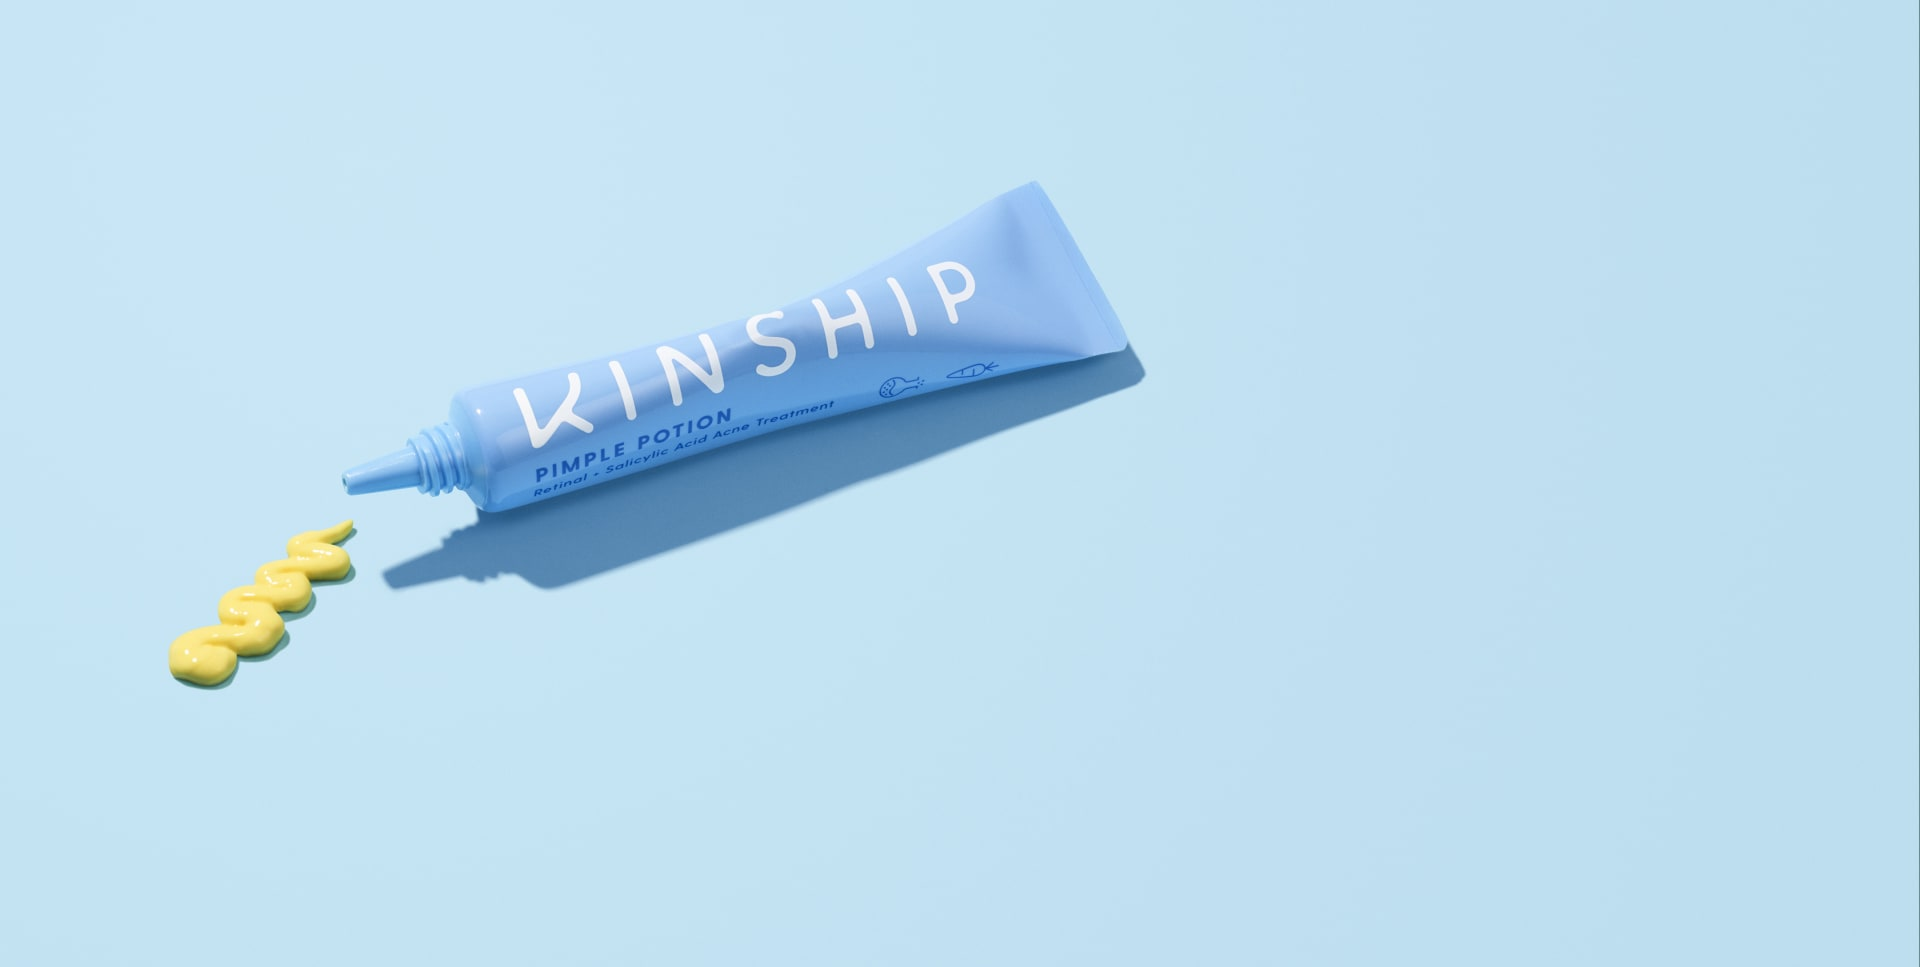 Kinship Pimple Potion Retinal + Salicylic Acid Acne Treatment